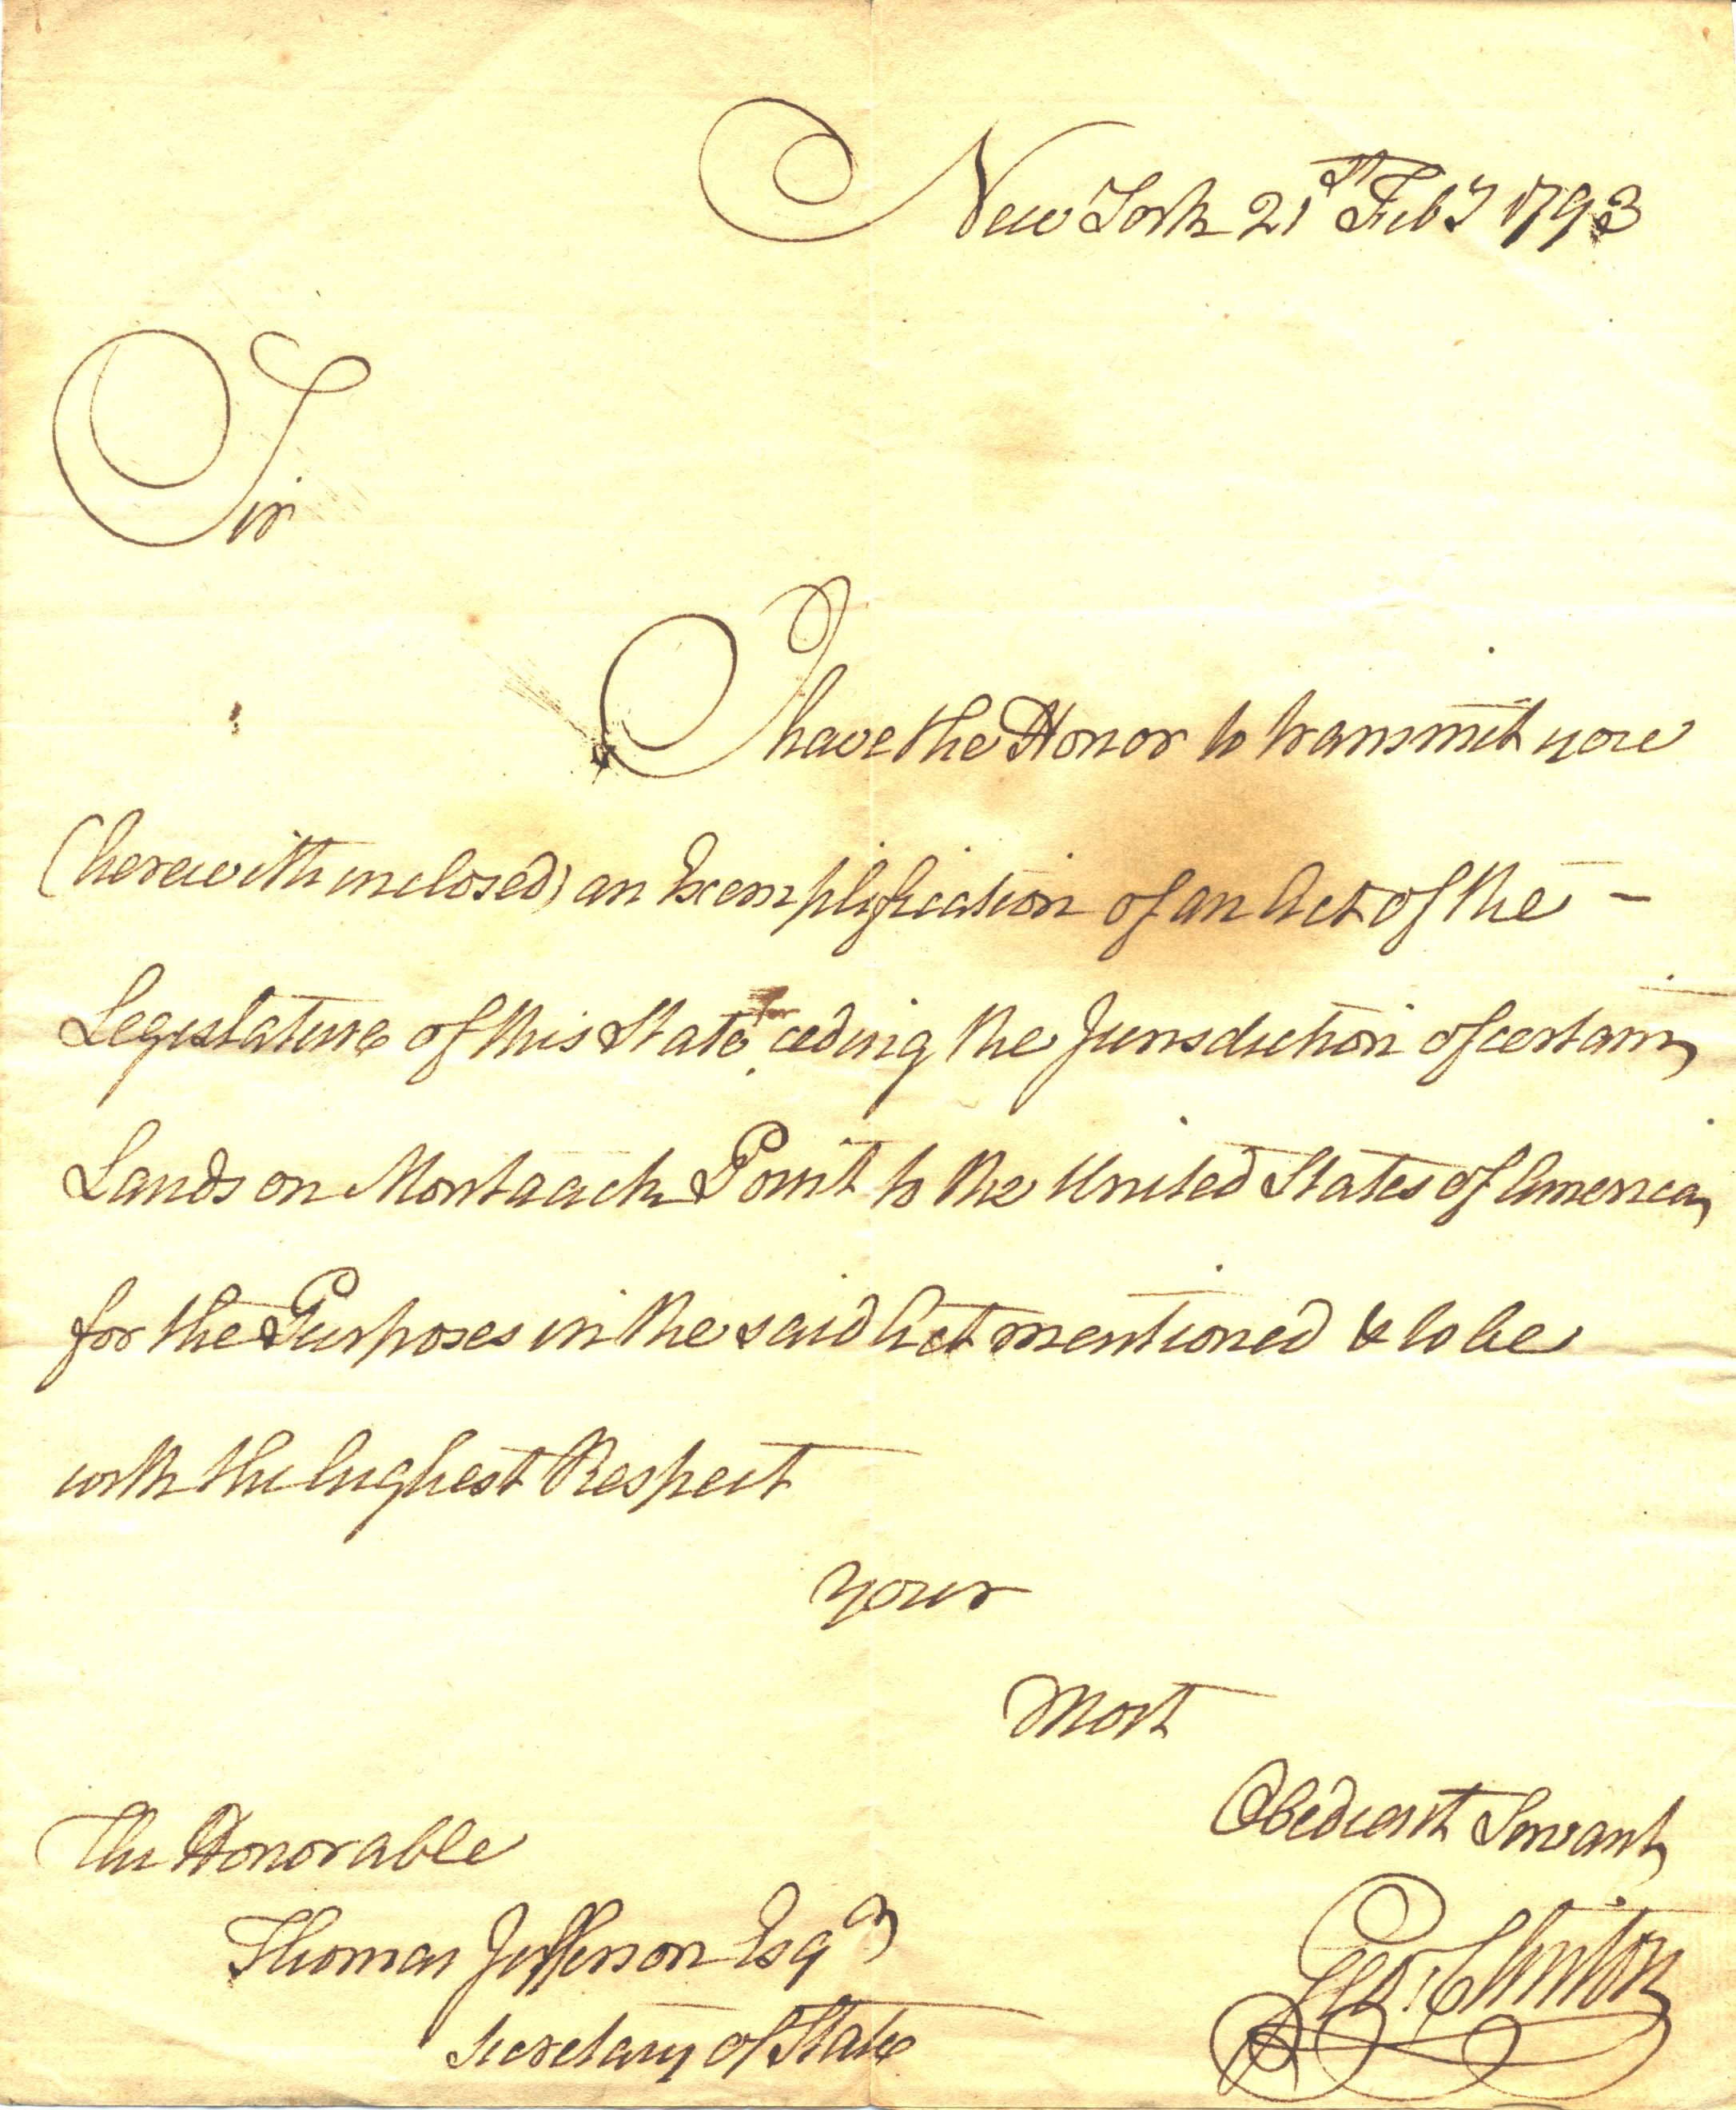 Letter from George Clinton, first governor of New York, to his friend Thomas Jefferson, in regard to the transfer of land in Montauk, Long Island, New York to the United States of America. The Second United States Congress under president George Washington subsequently appropriated $20,000 on March 2, 1793 to build a lighthouse in Montauk. Dated February 21, 1793, written from New York, the letter is docketed on verso by Thomas Jefferson, Secretary of State: